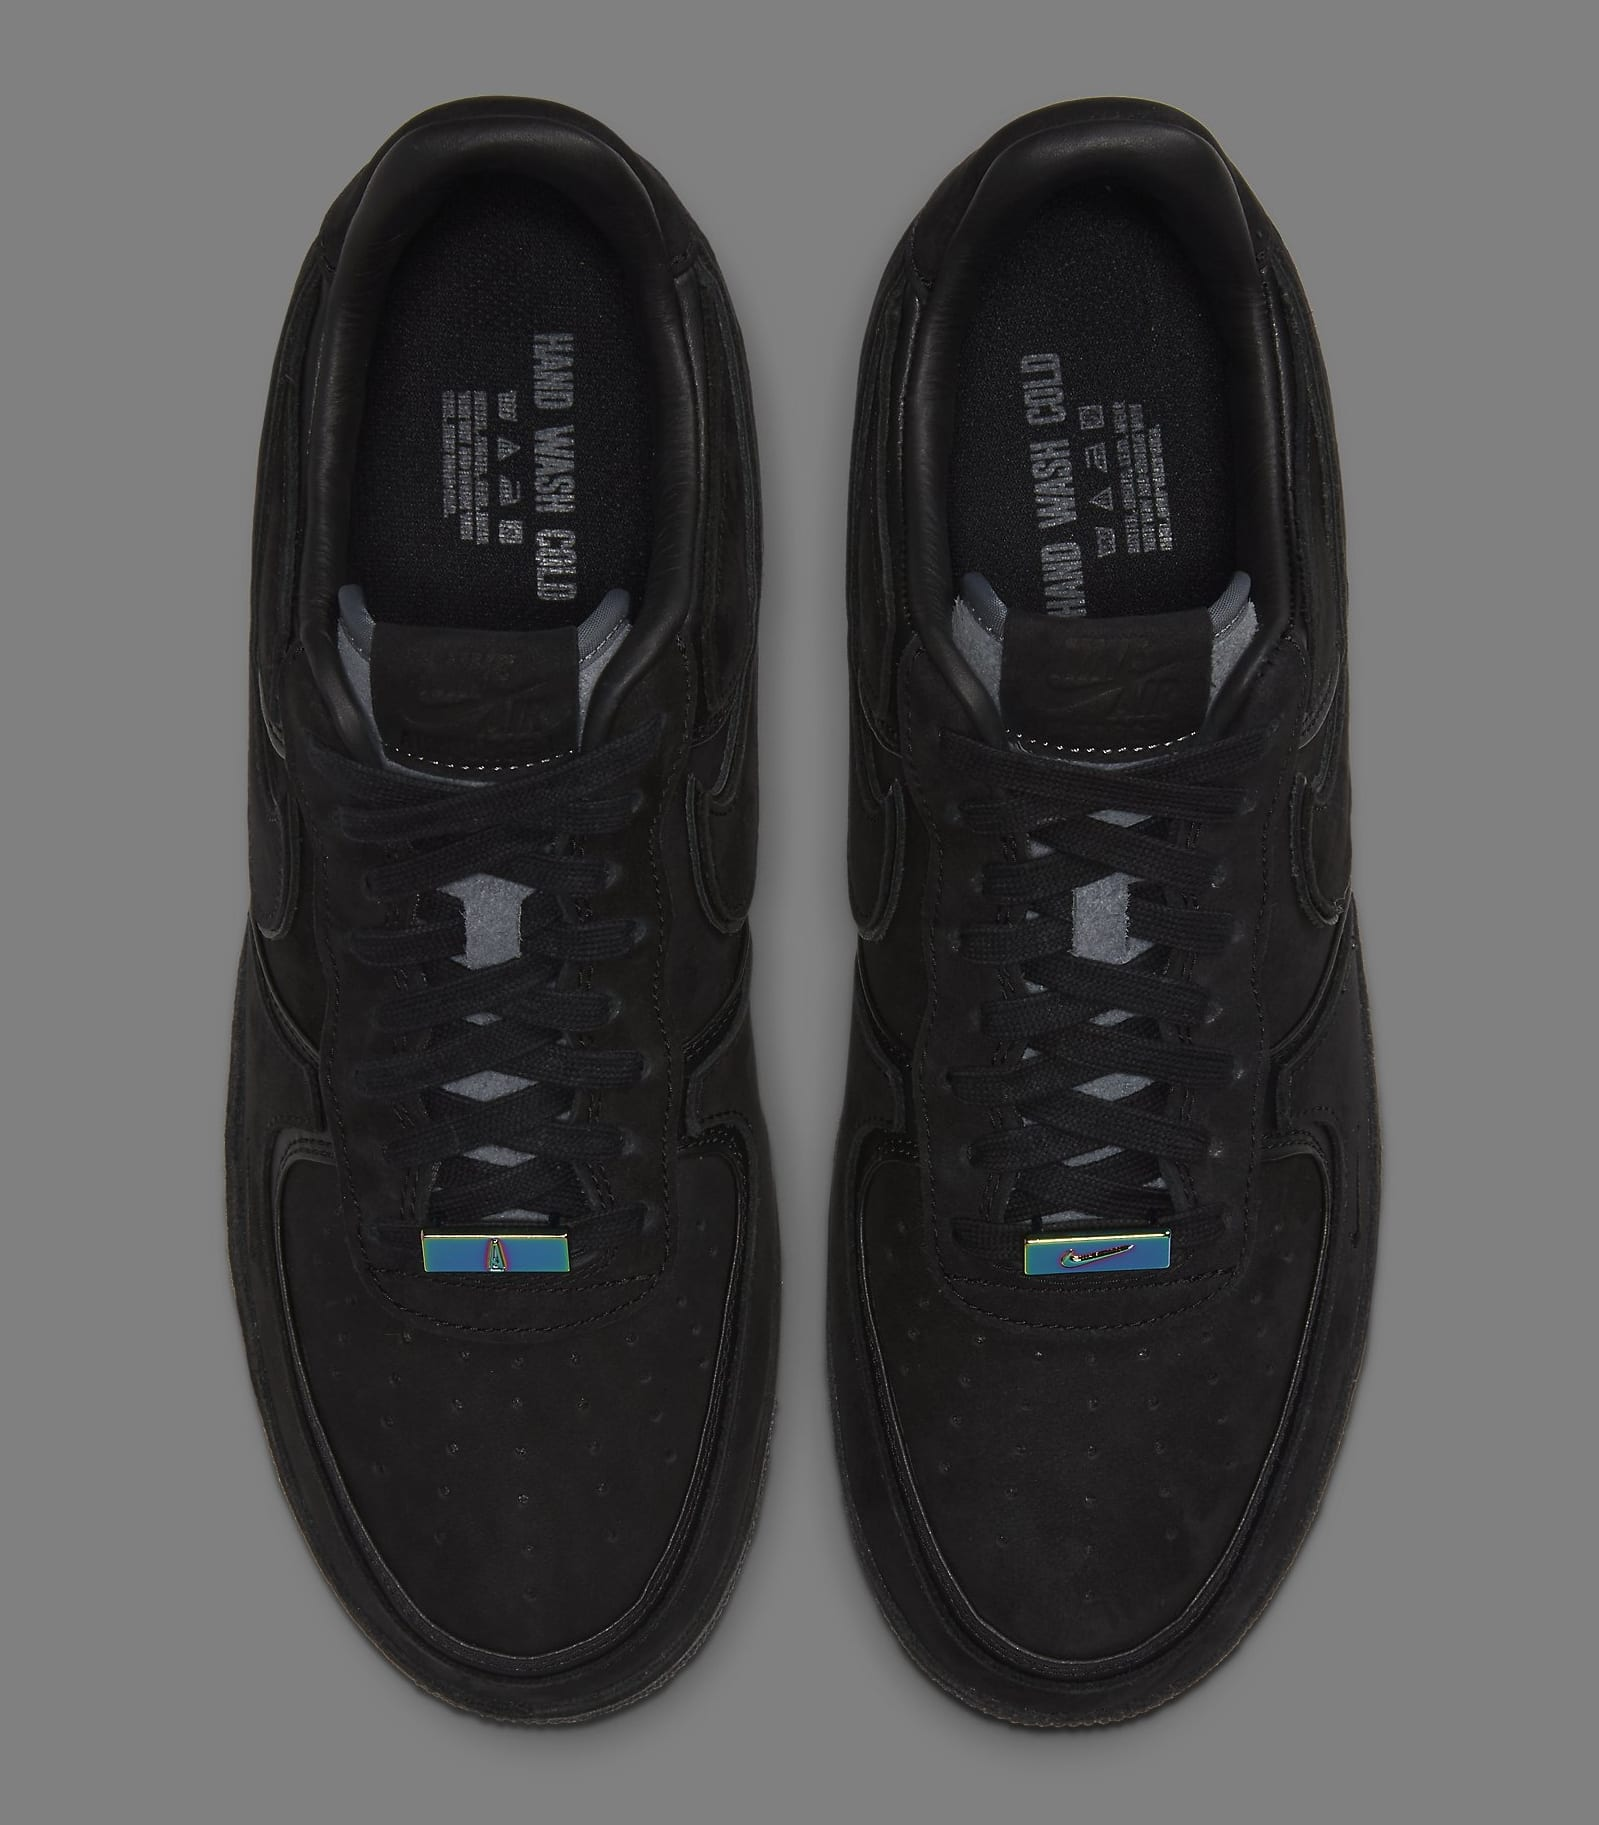 a-ma-maniere-nike-air-force-1-low-hand-wash-cold-cq1087-002-top